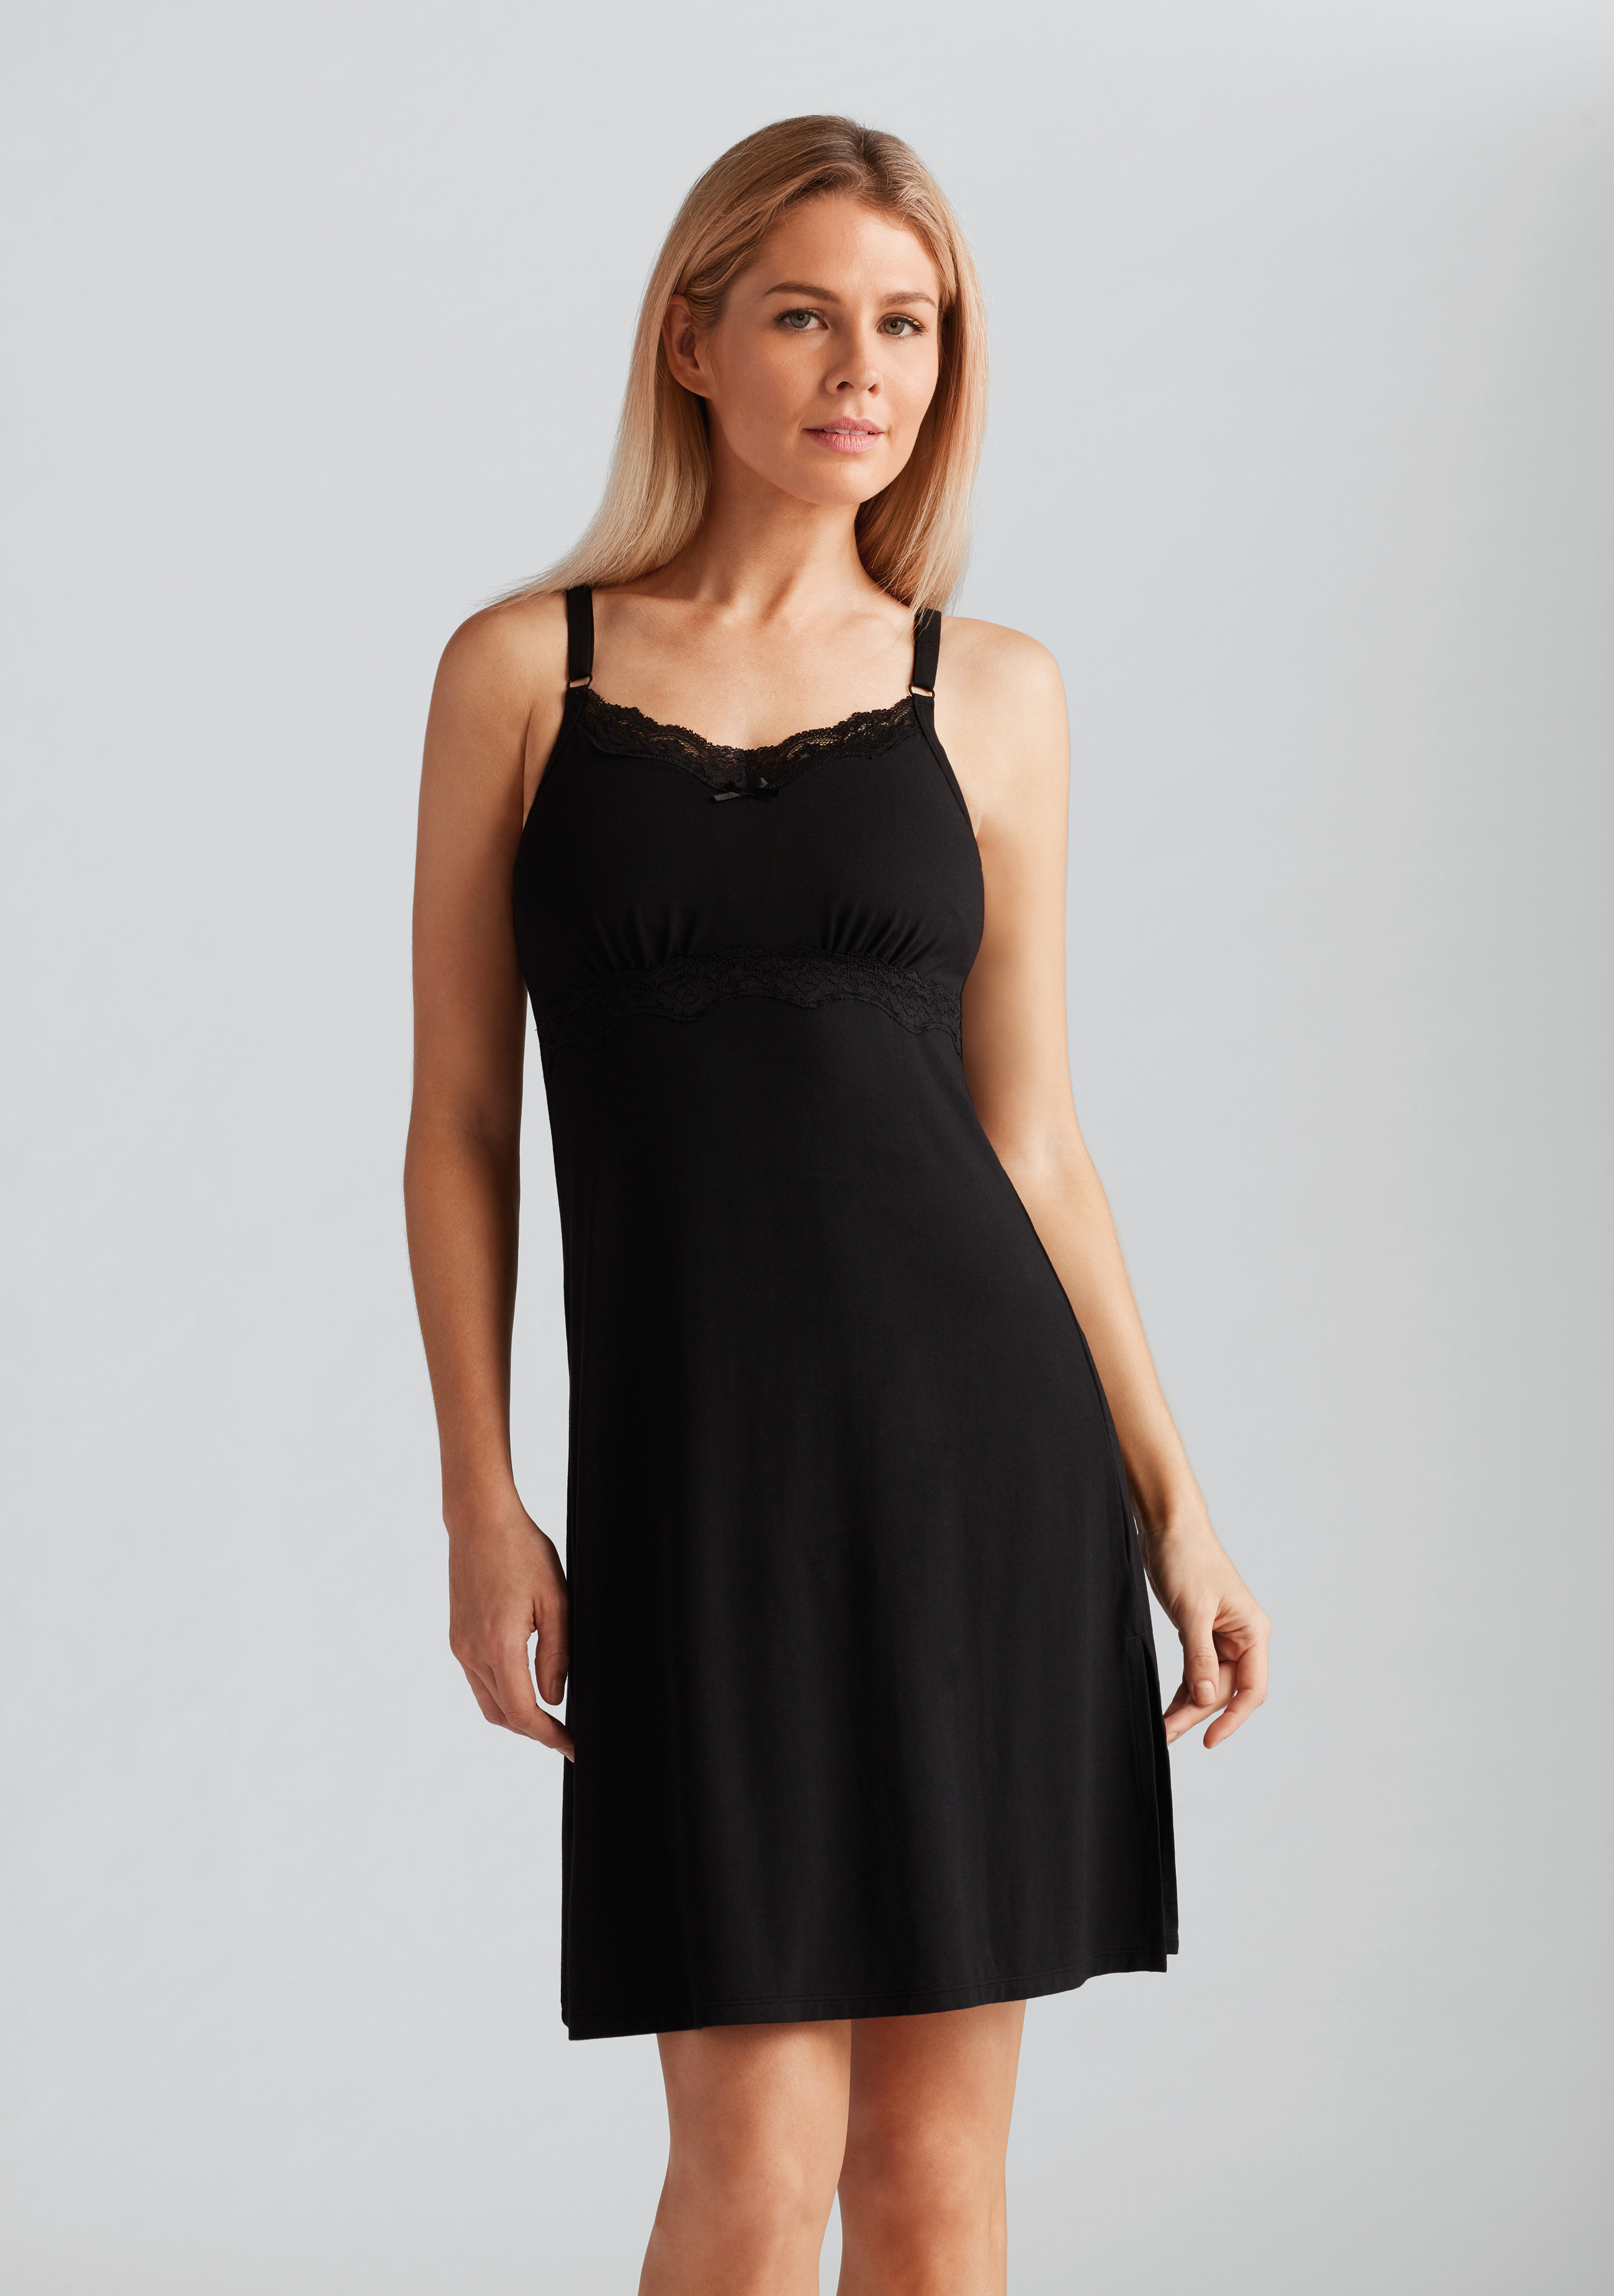 Nightdress_44294_Black